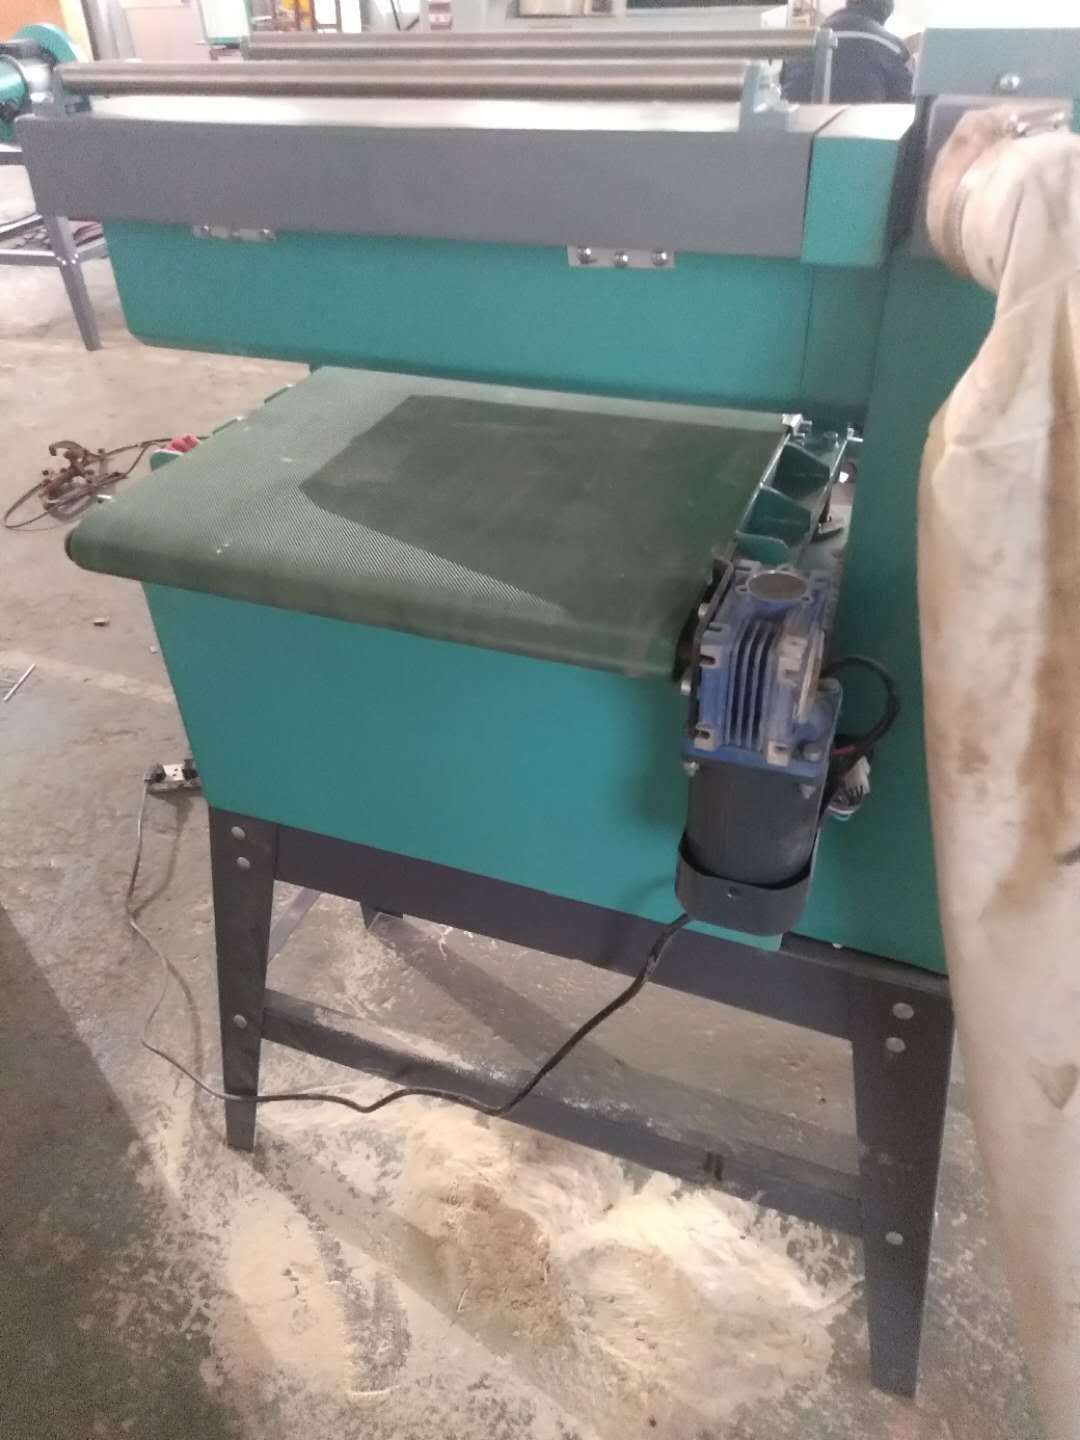 Open Woodworking Drum Sander Machine